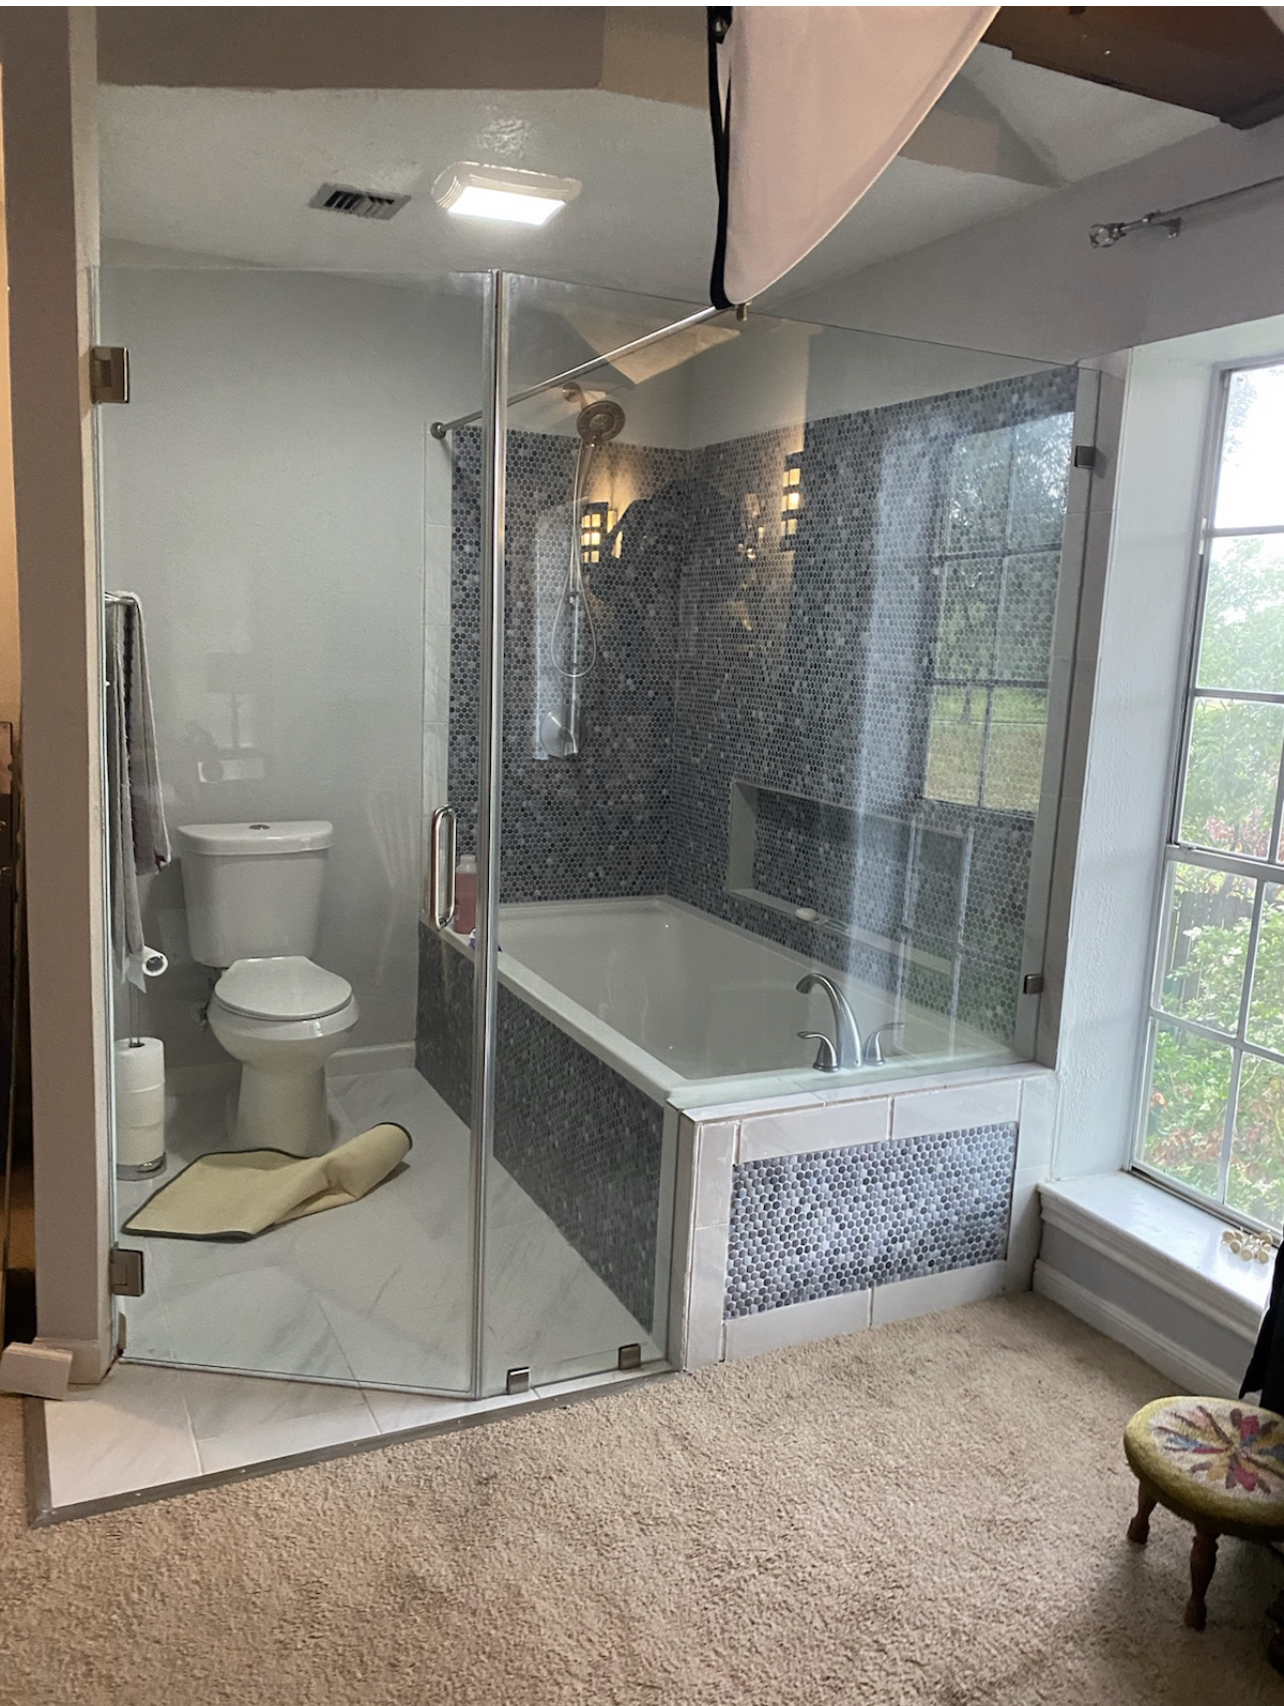 Remodeling - General Project